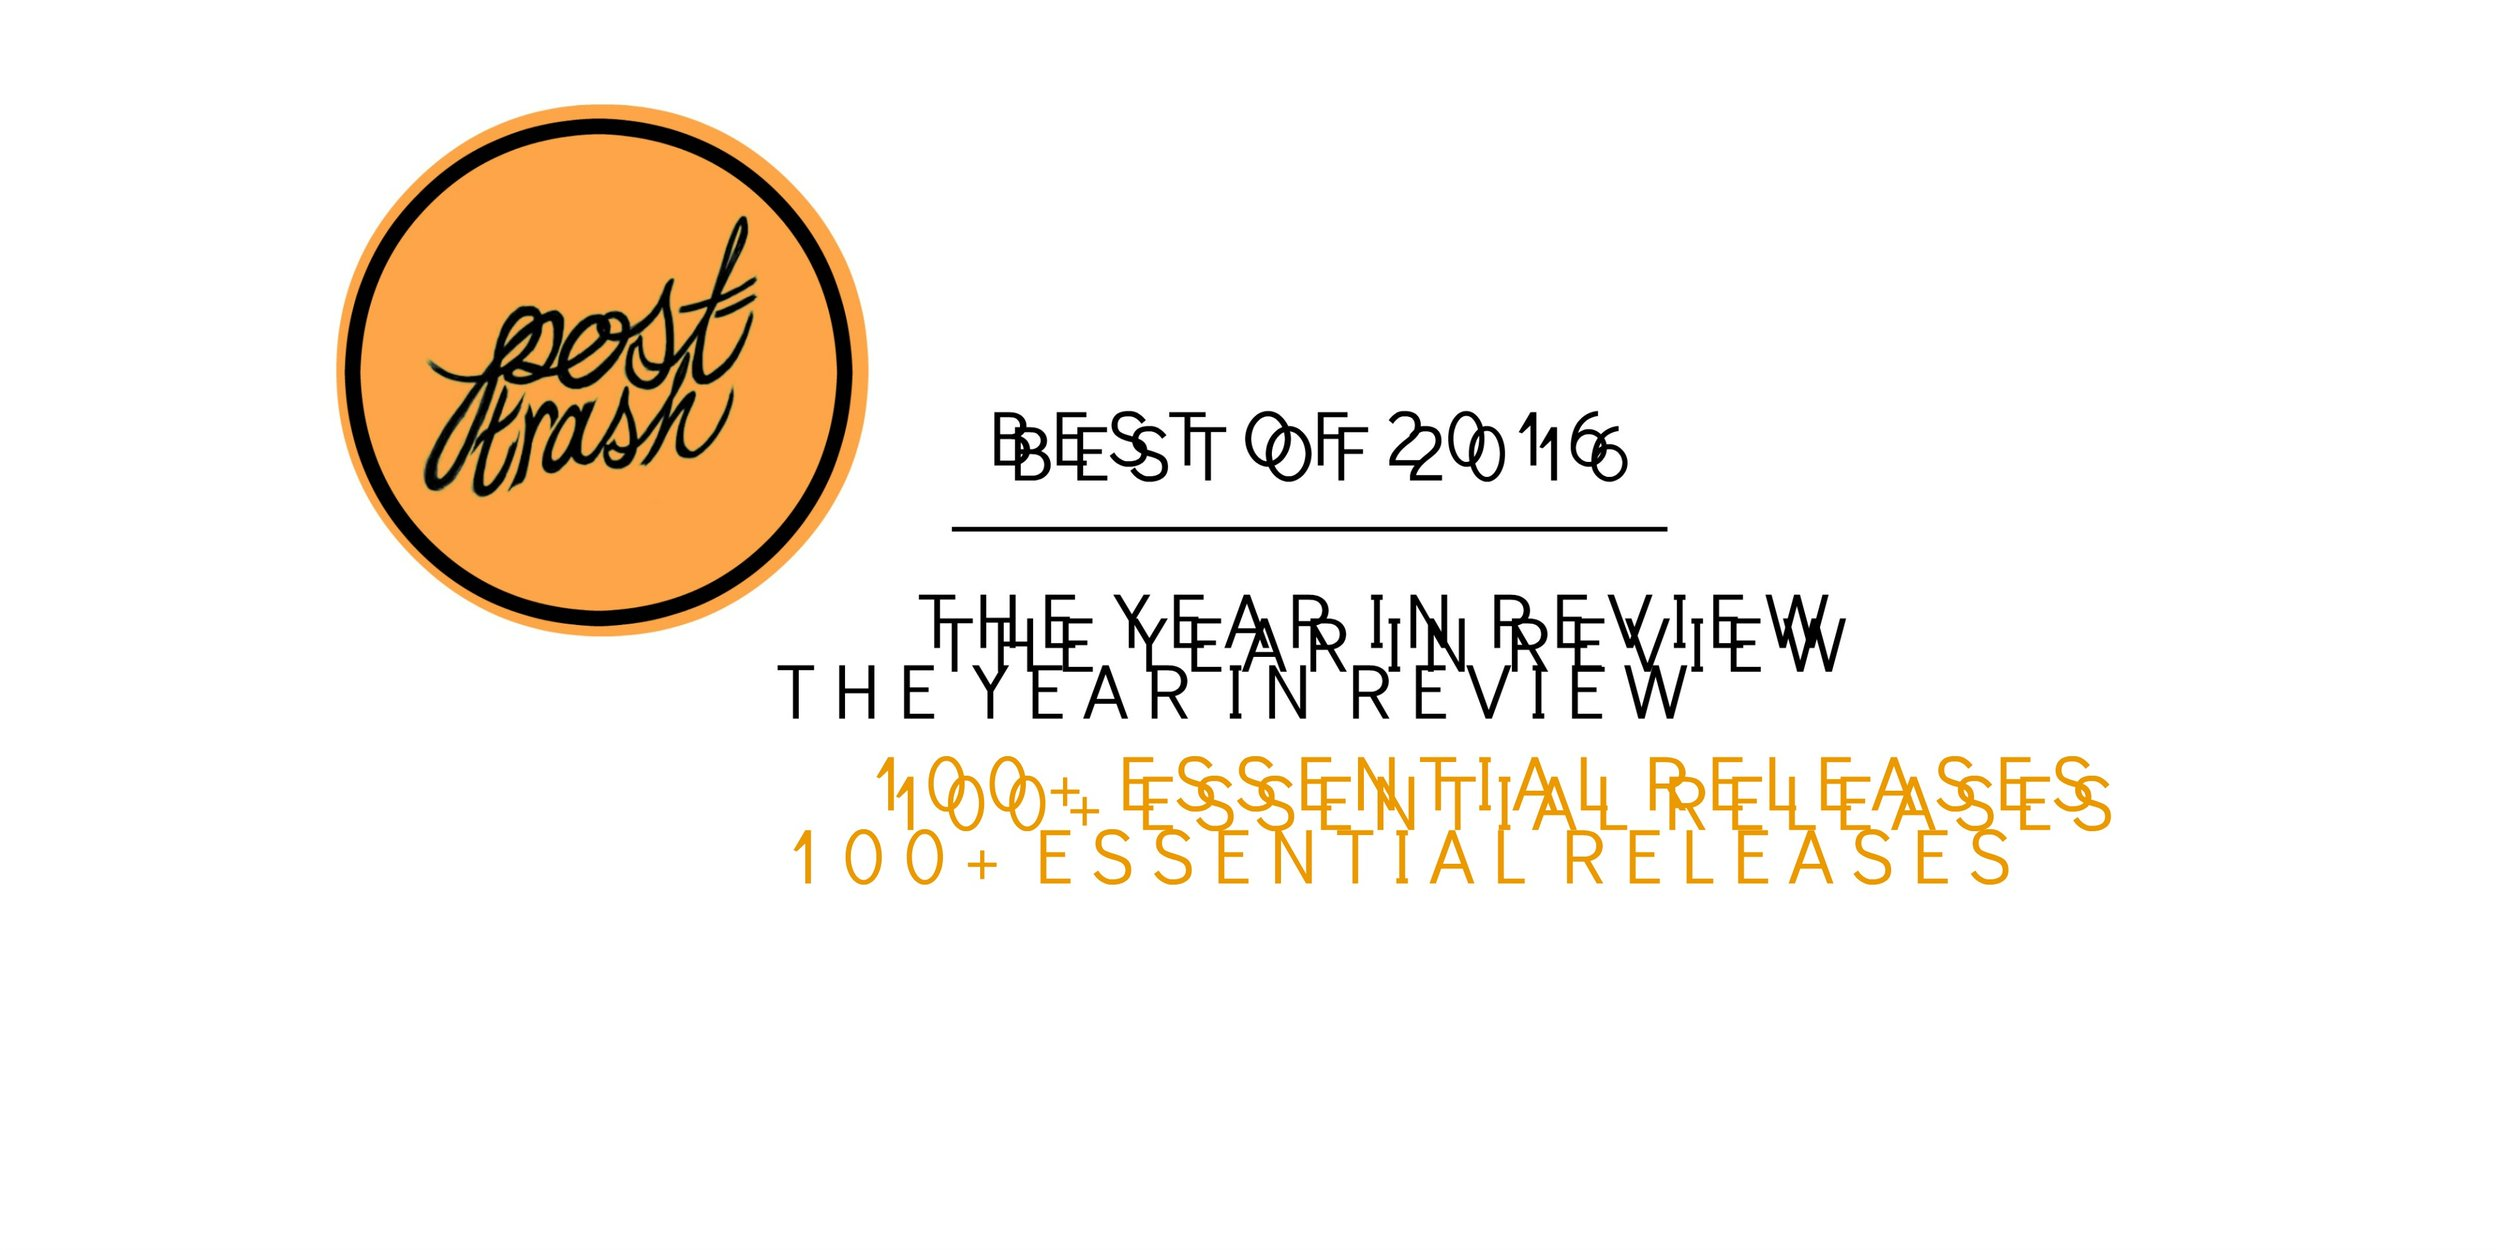 Post-Trash's Best of 2016 | The Year In Review — POST-TRASH